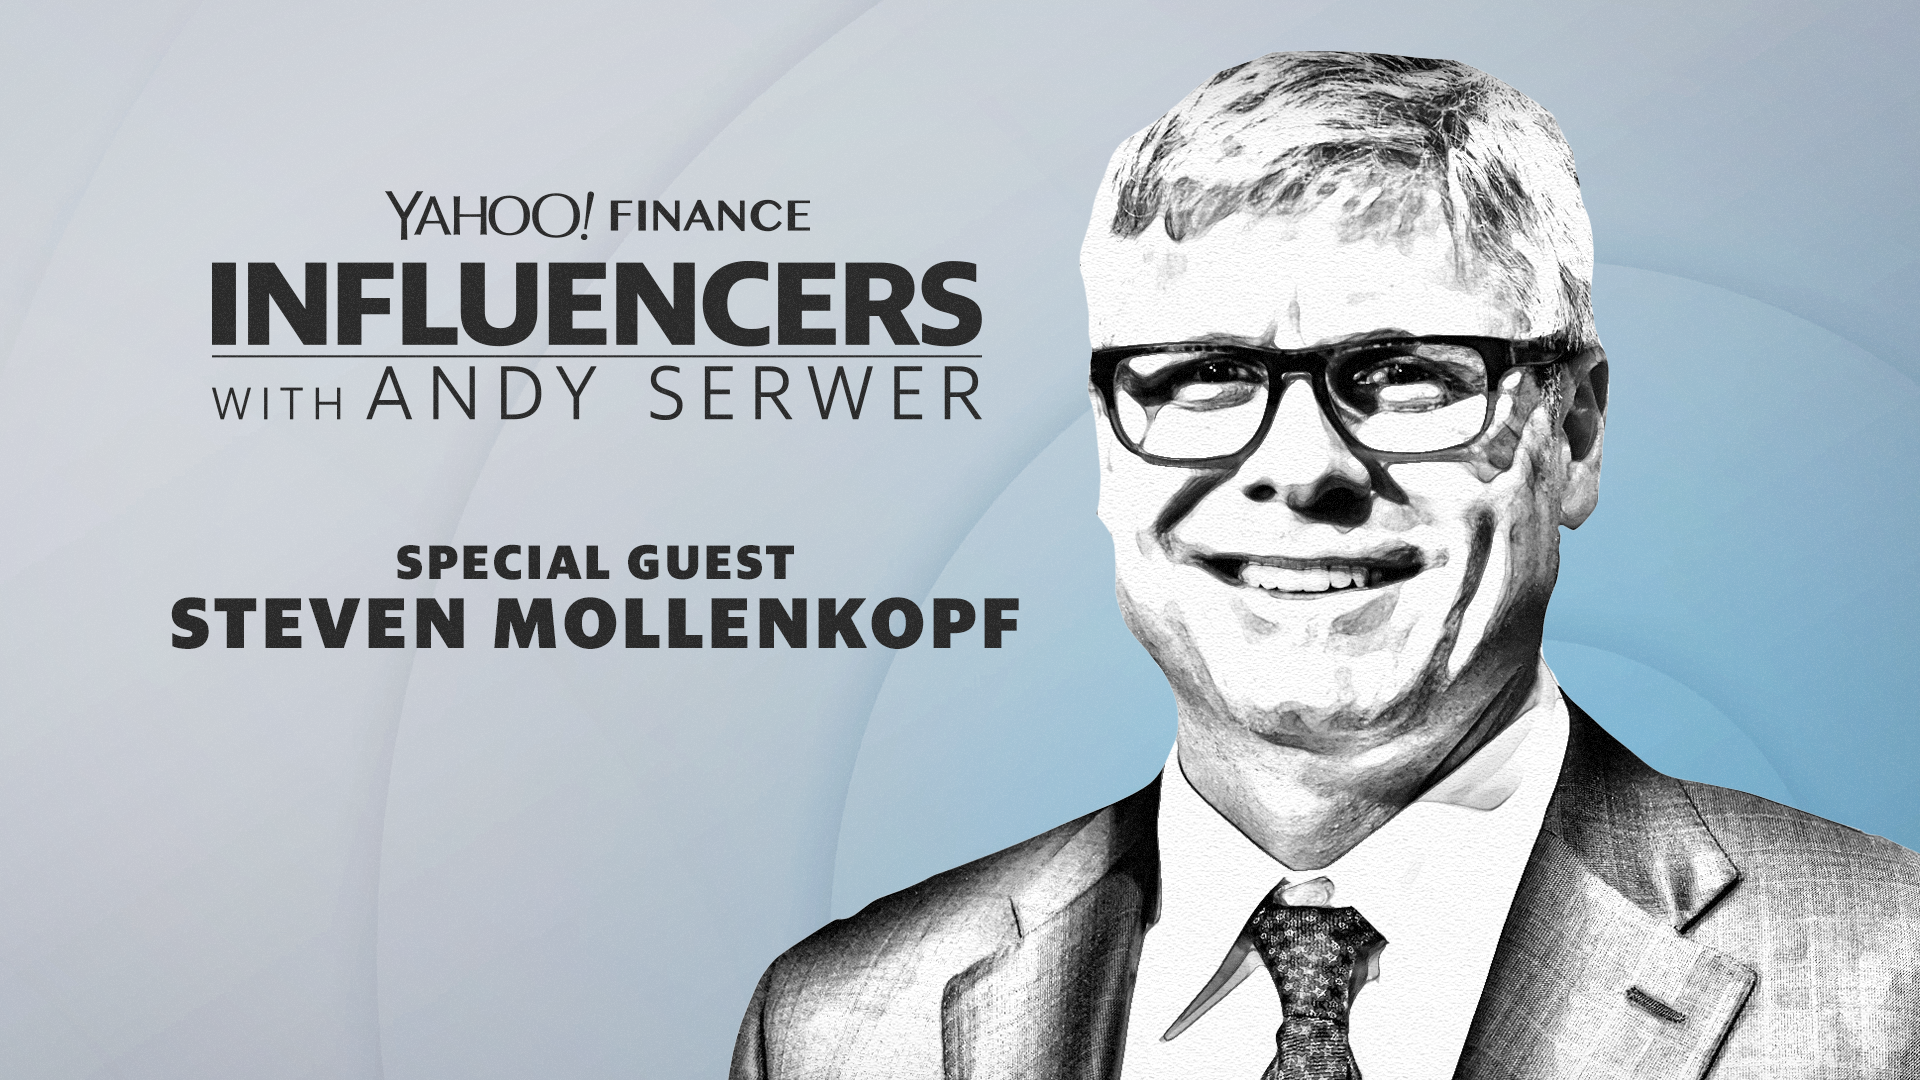 Steve Mollenkopf joins Influencers with Andy Serwer